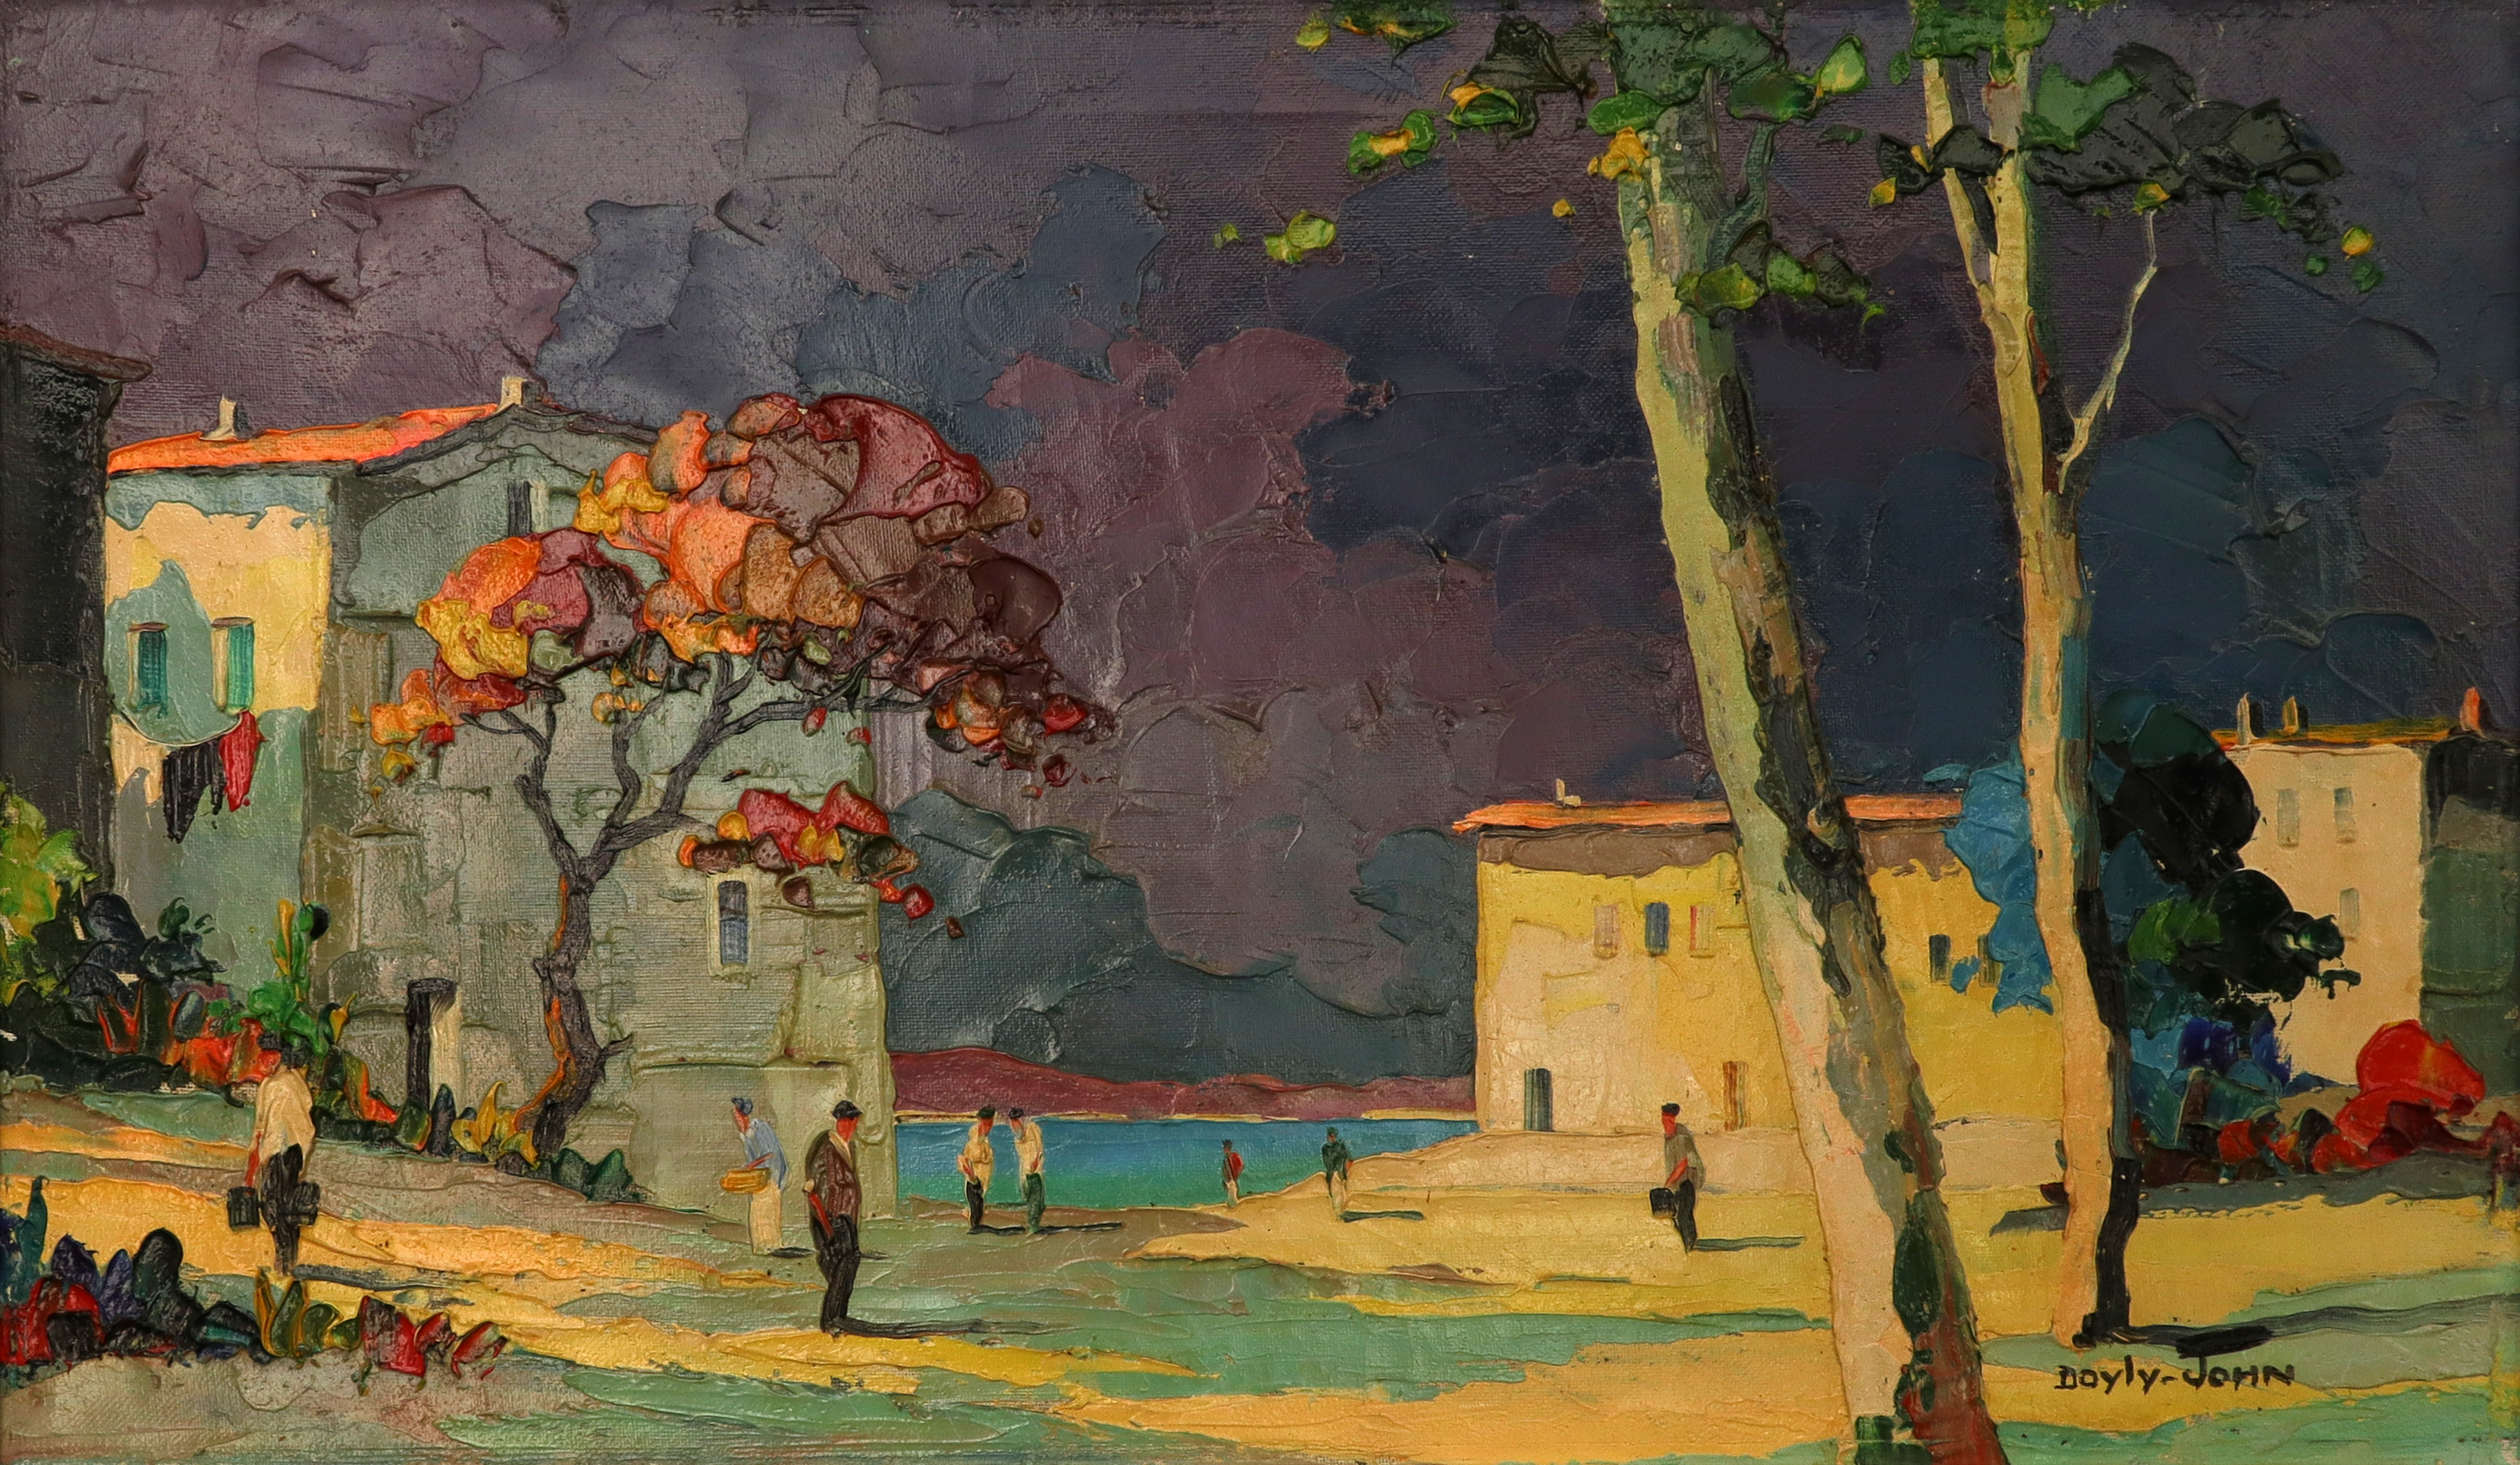 ‡Cecil Rochfort D'Oyly-John (1906-1993) Le Lavandou, near Toulon Signed DOYLY-JOHN (lower right) and